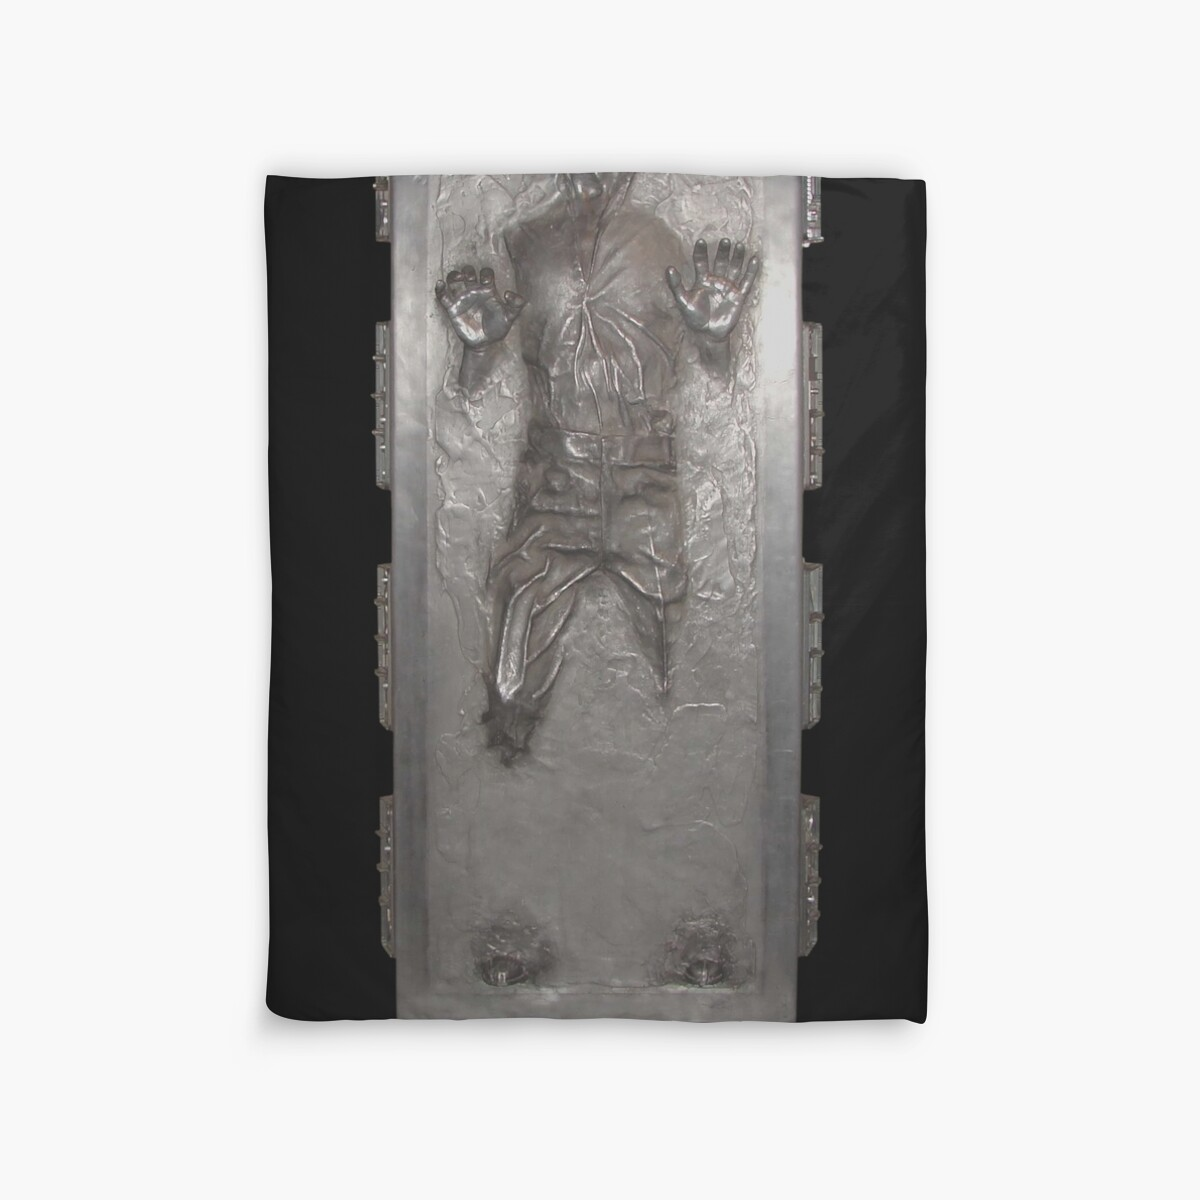 Han solo in carbonite duvet cover duvet covers by jaketheviking0 redbubble - Han solo carbonite wall art ...